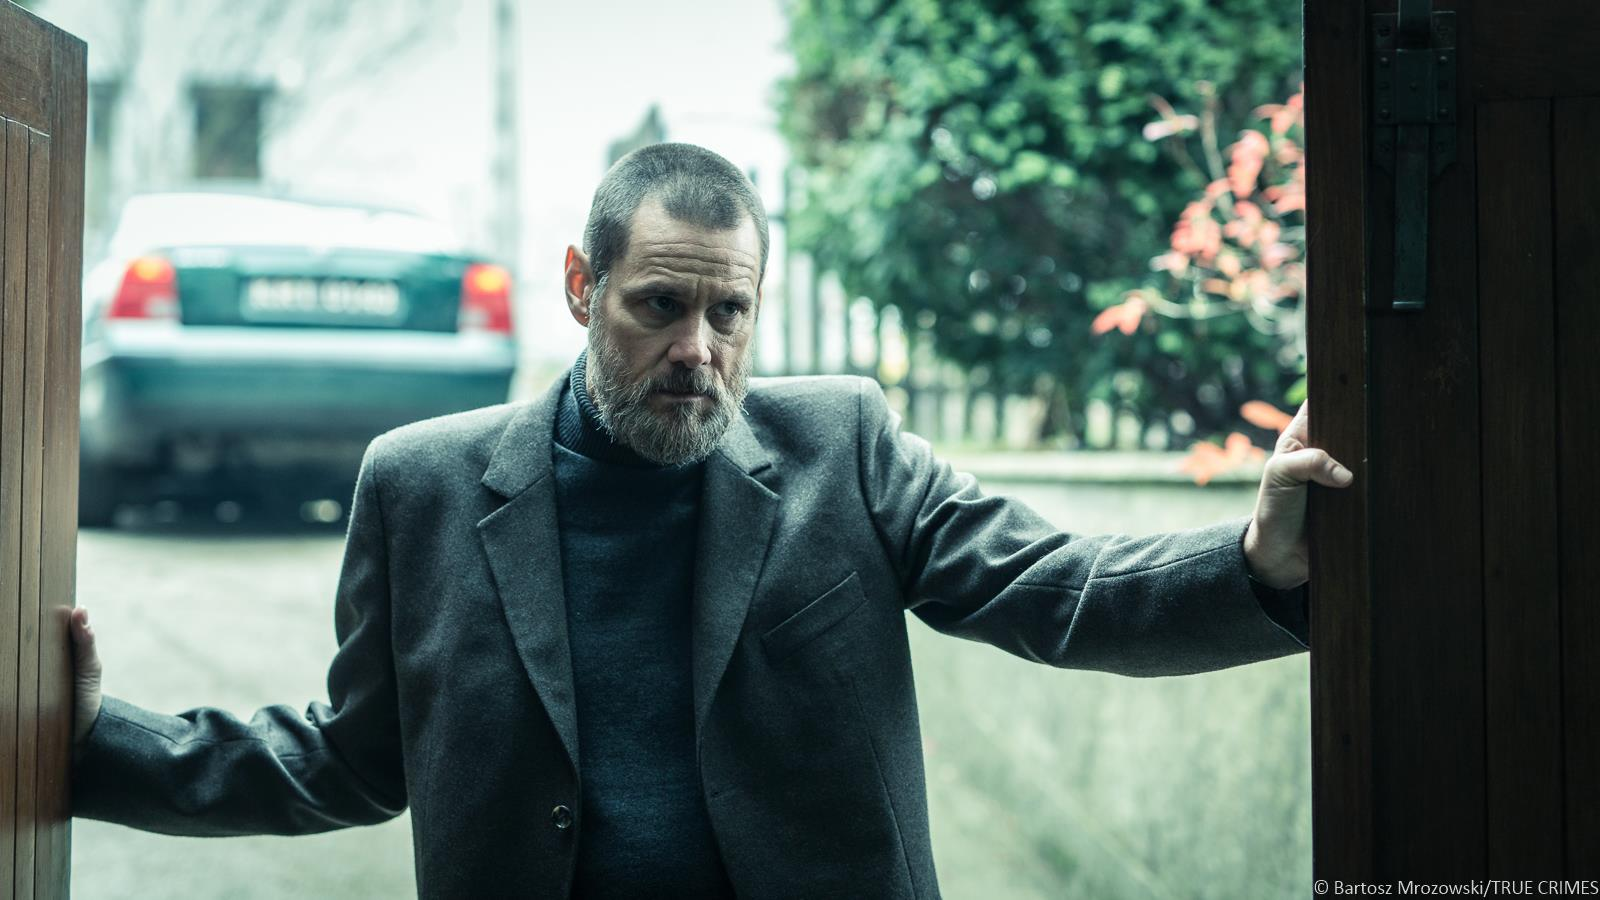 Jim Carrey Swaps Laughs For Thrills In First Images For Polish Drama True Crimes